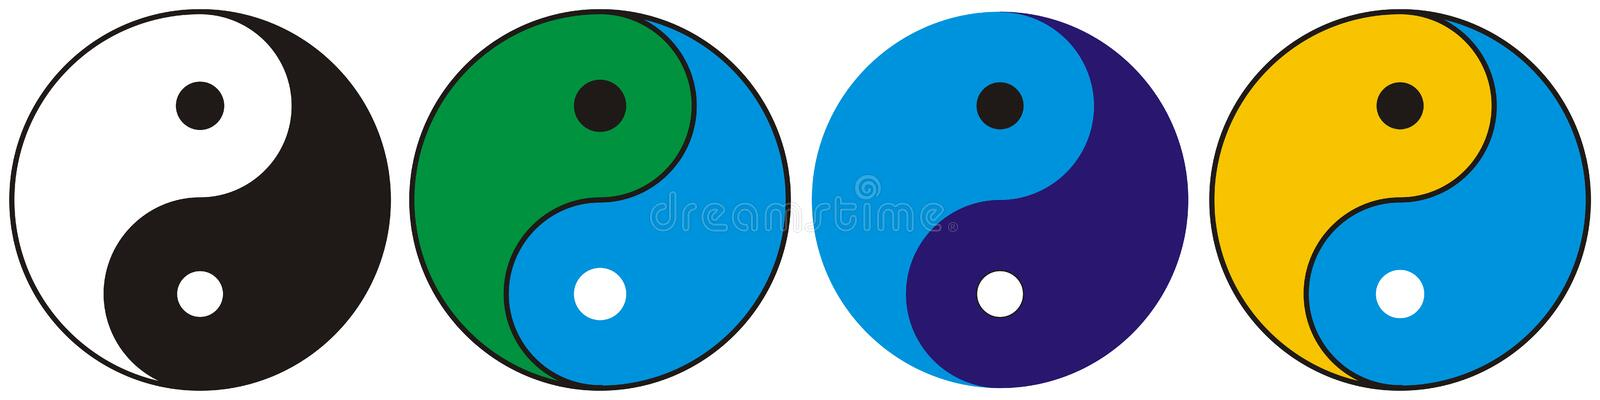 Ying Yang - Vector stock illustratie